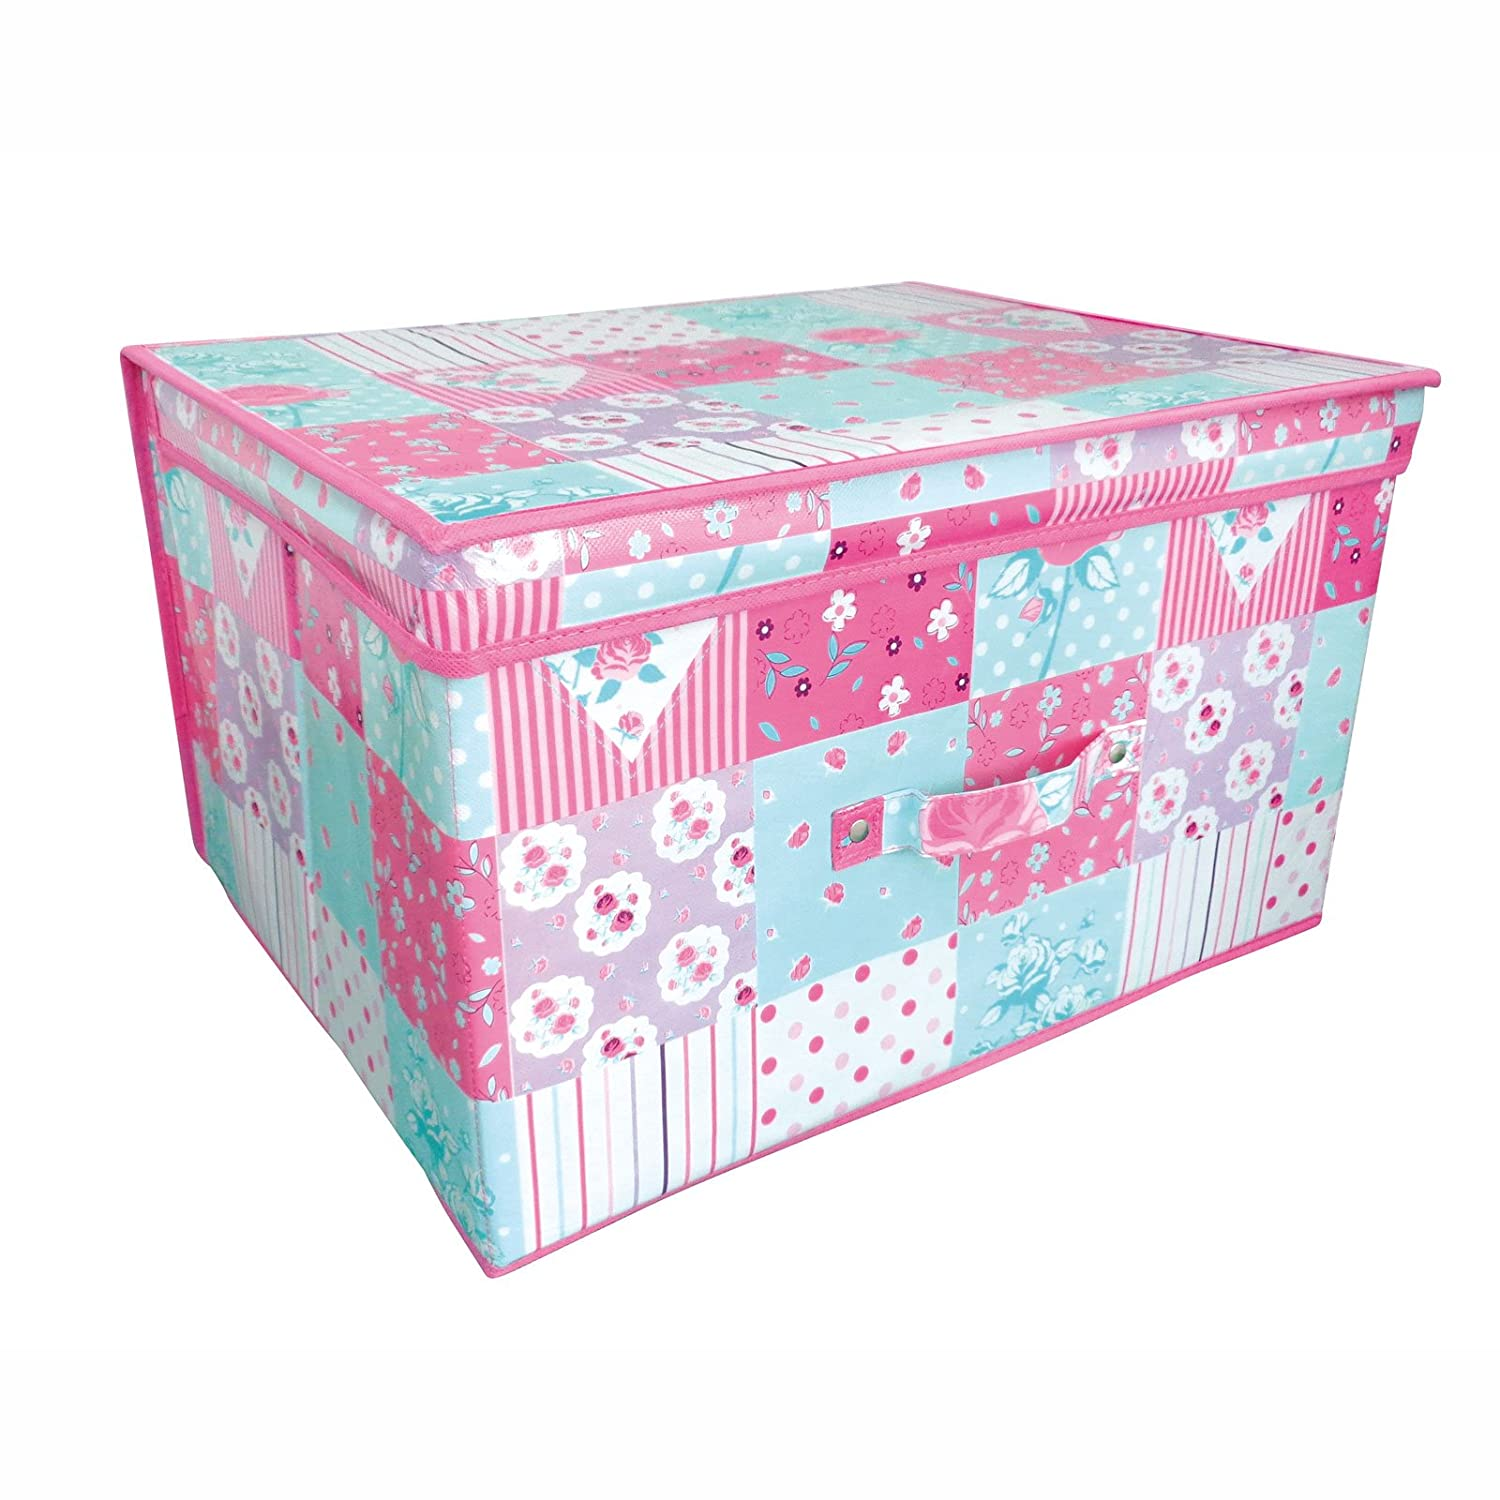 Folding Pink And Teal Patchwork Kids Room Tidy Toy Storage Box With Lid:  Amazon.co.uk: Kitchen U0026 Home